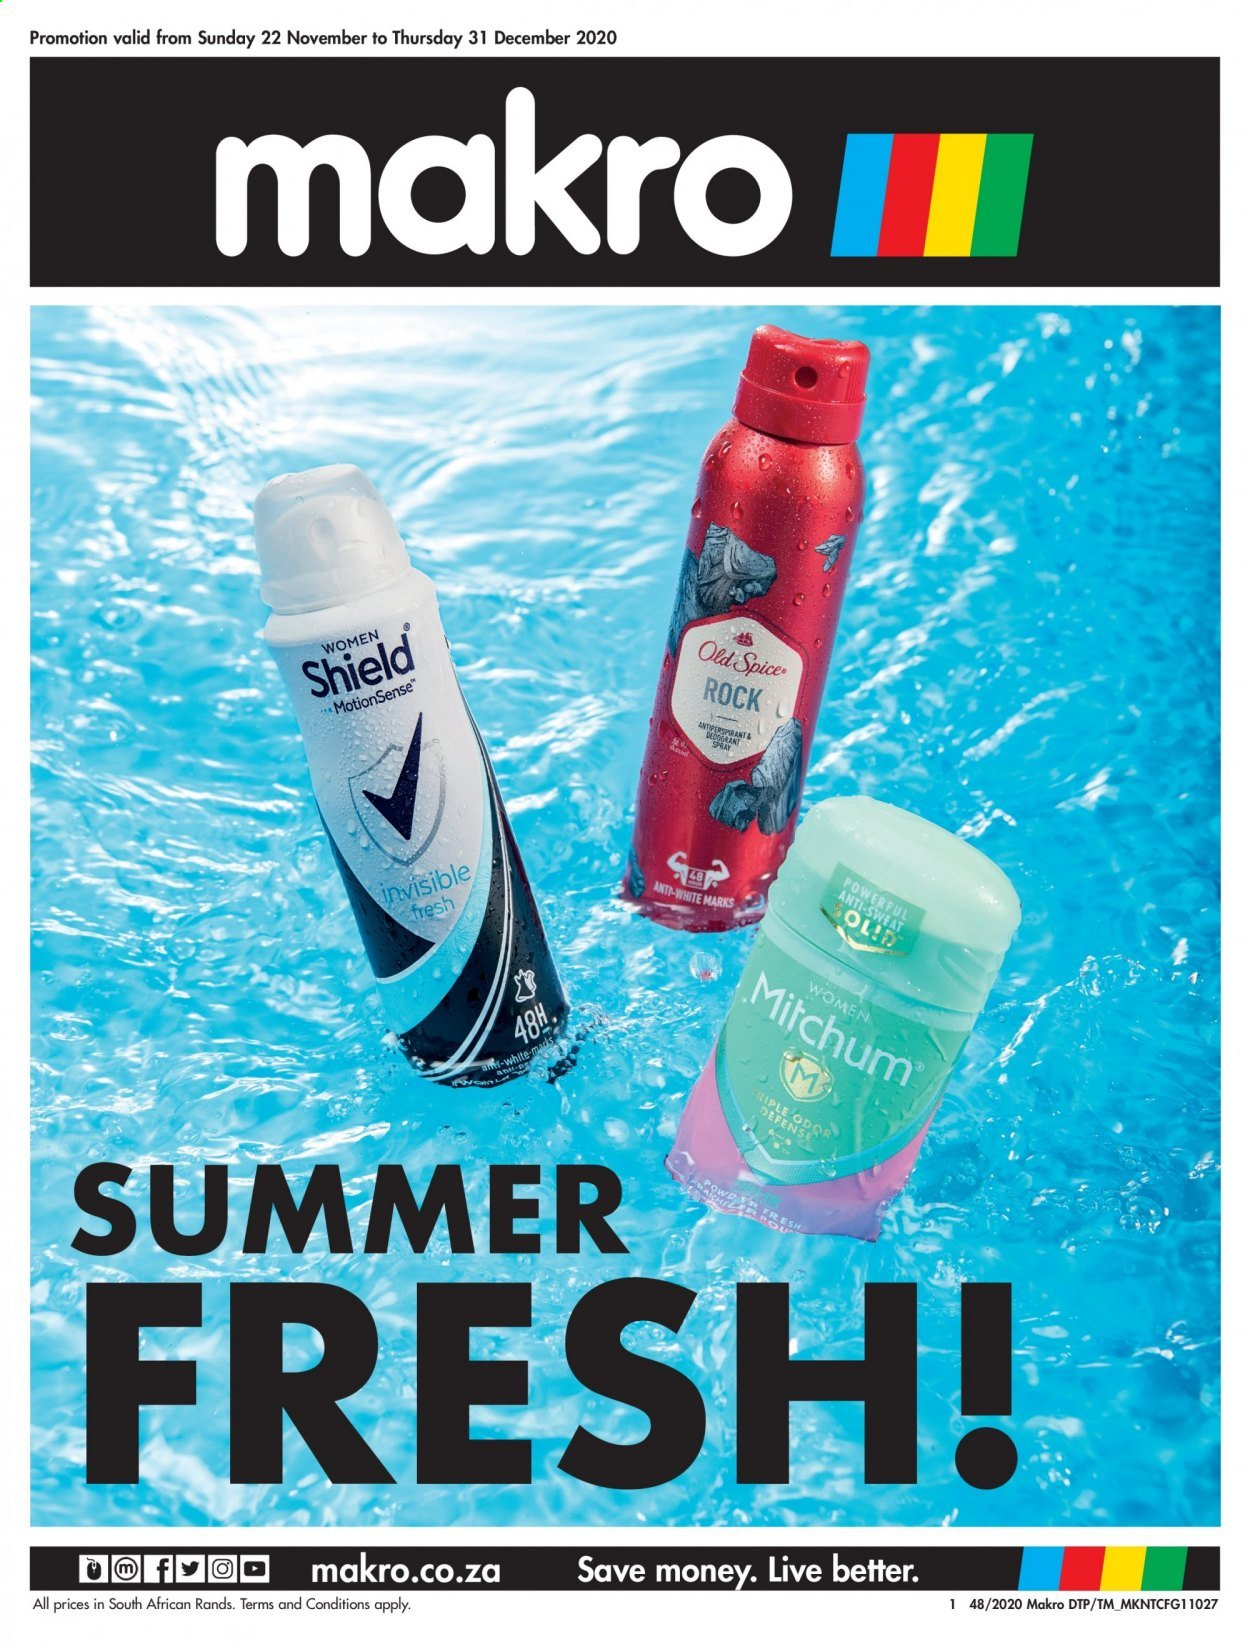 Makro catalogue  - 11.22.2020 - 12.31.2020 - Sales products - shield, Sol, Old Spice, anti-perspirant. Page 1.